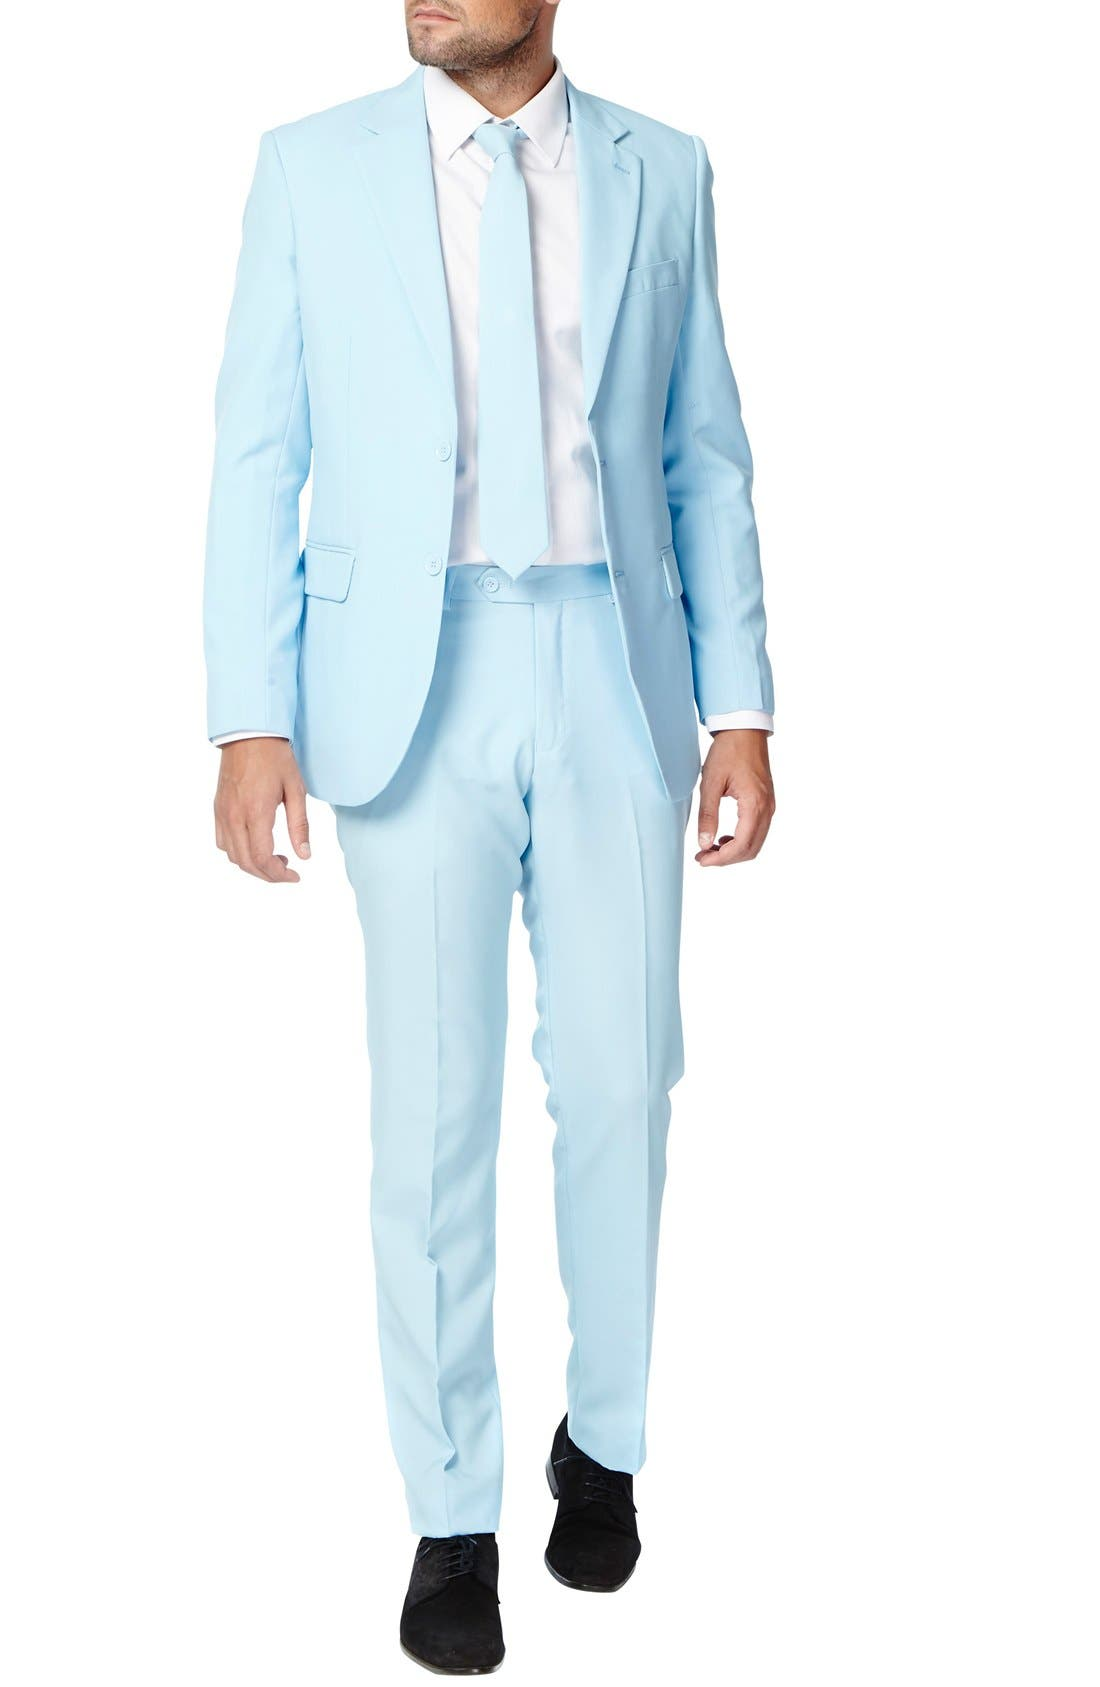 OppoSuits 'Cool Blue' Trim Fit Two-Piece Suit with Tie